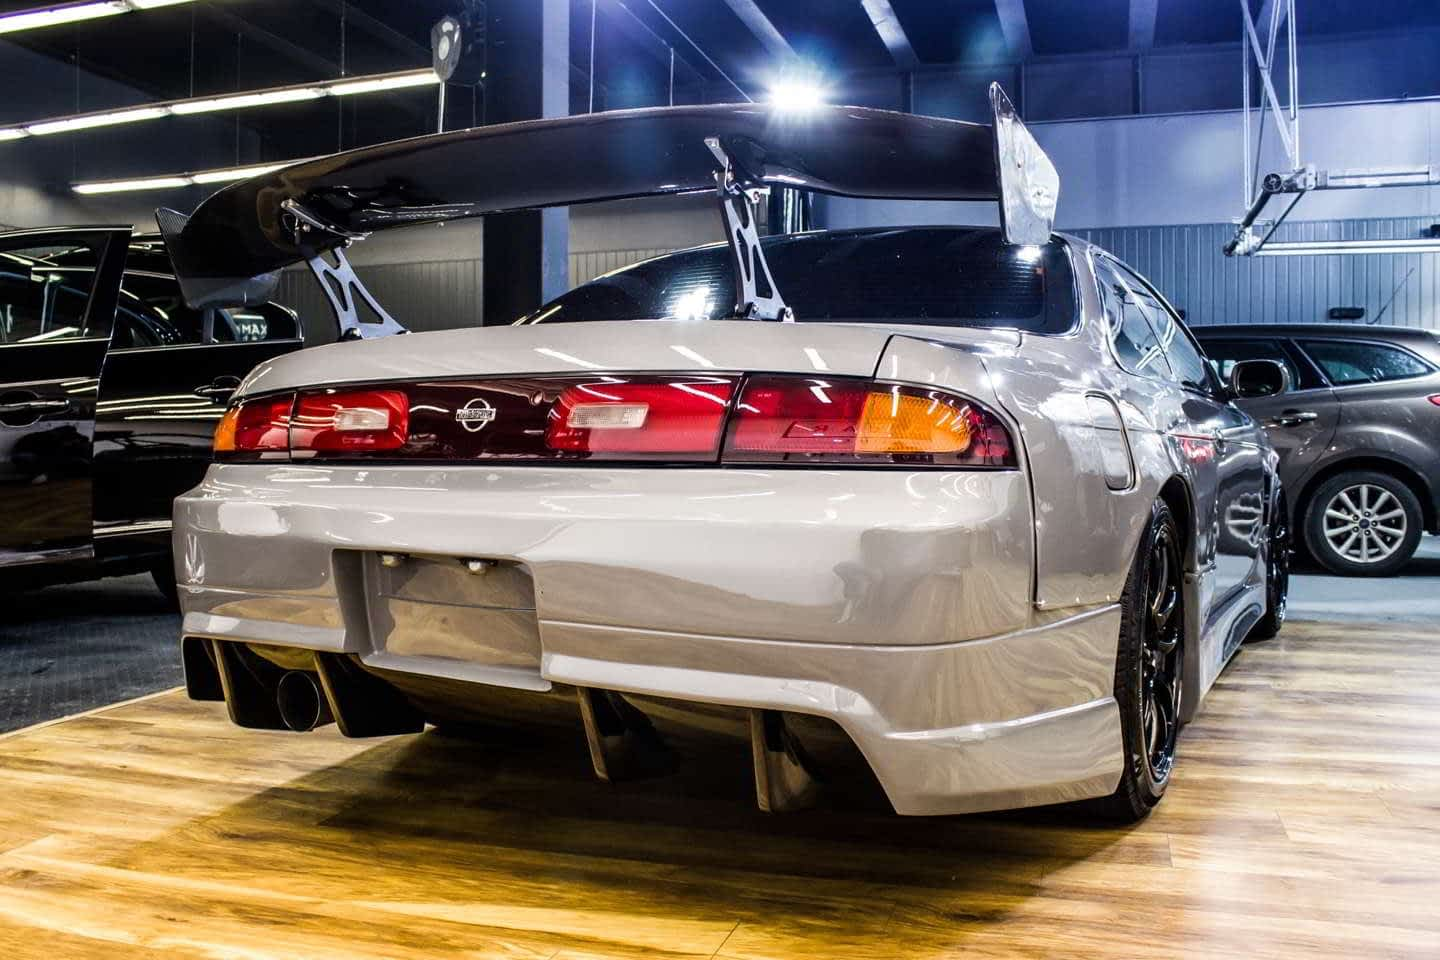 Nissan Silvia S14 - uliczny wojownik prosto z Need For Speed 1